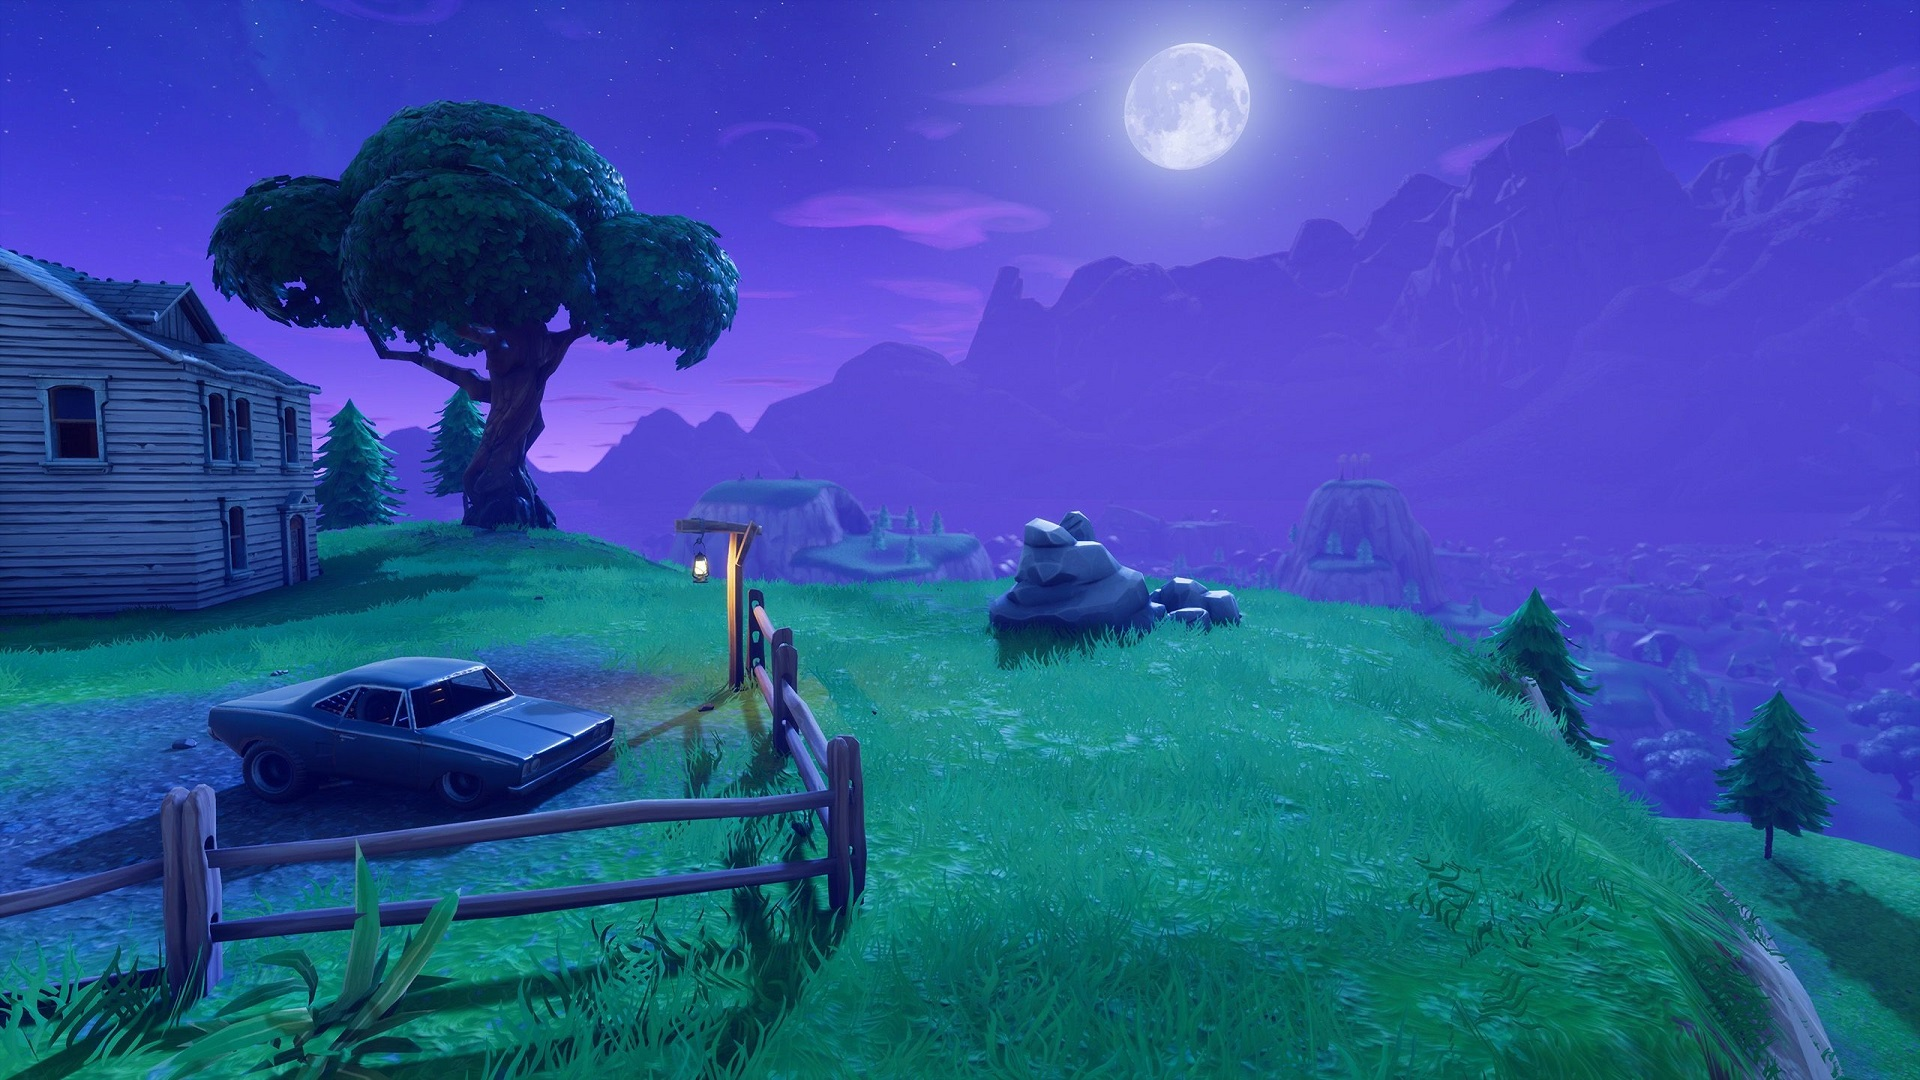 Background Images Read Games Review: Save Fortnite Battle Royale HD Wallpapers